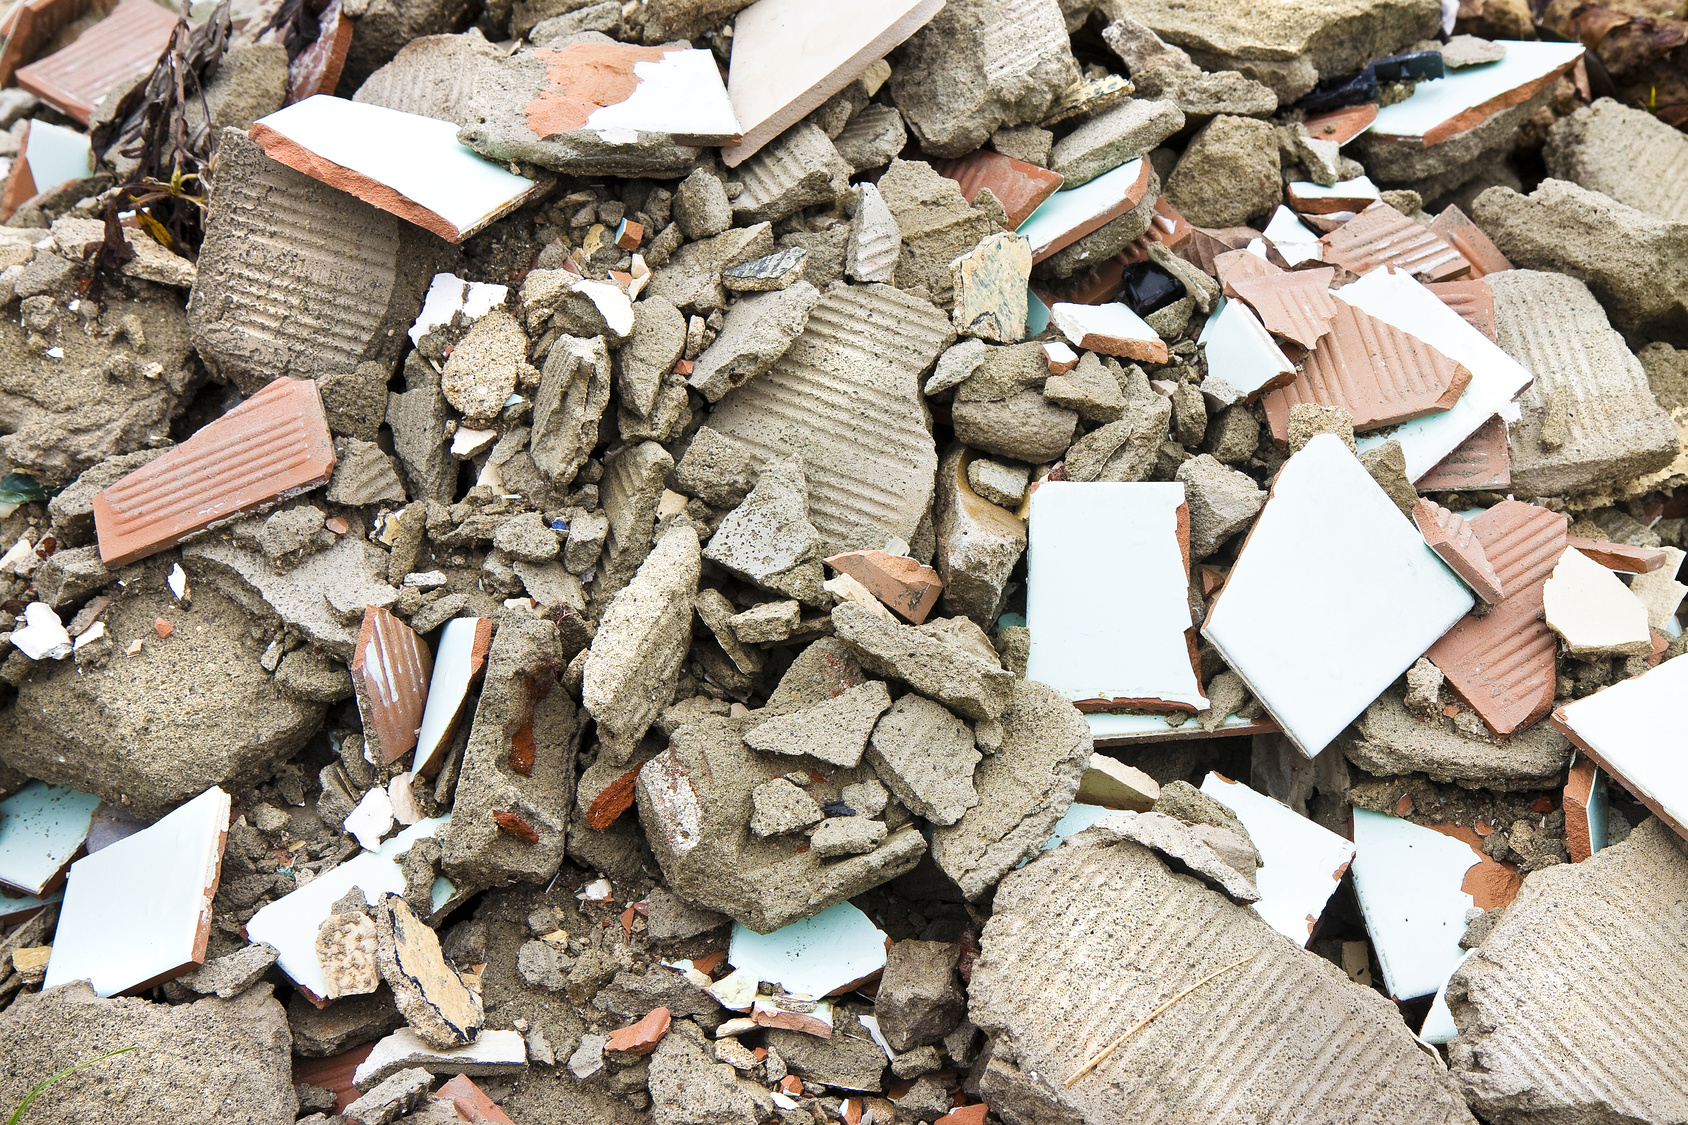 Debris after the demolition of a building